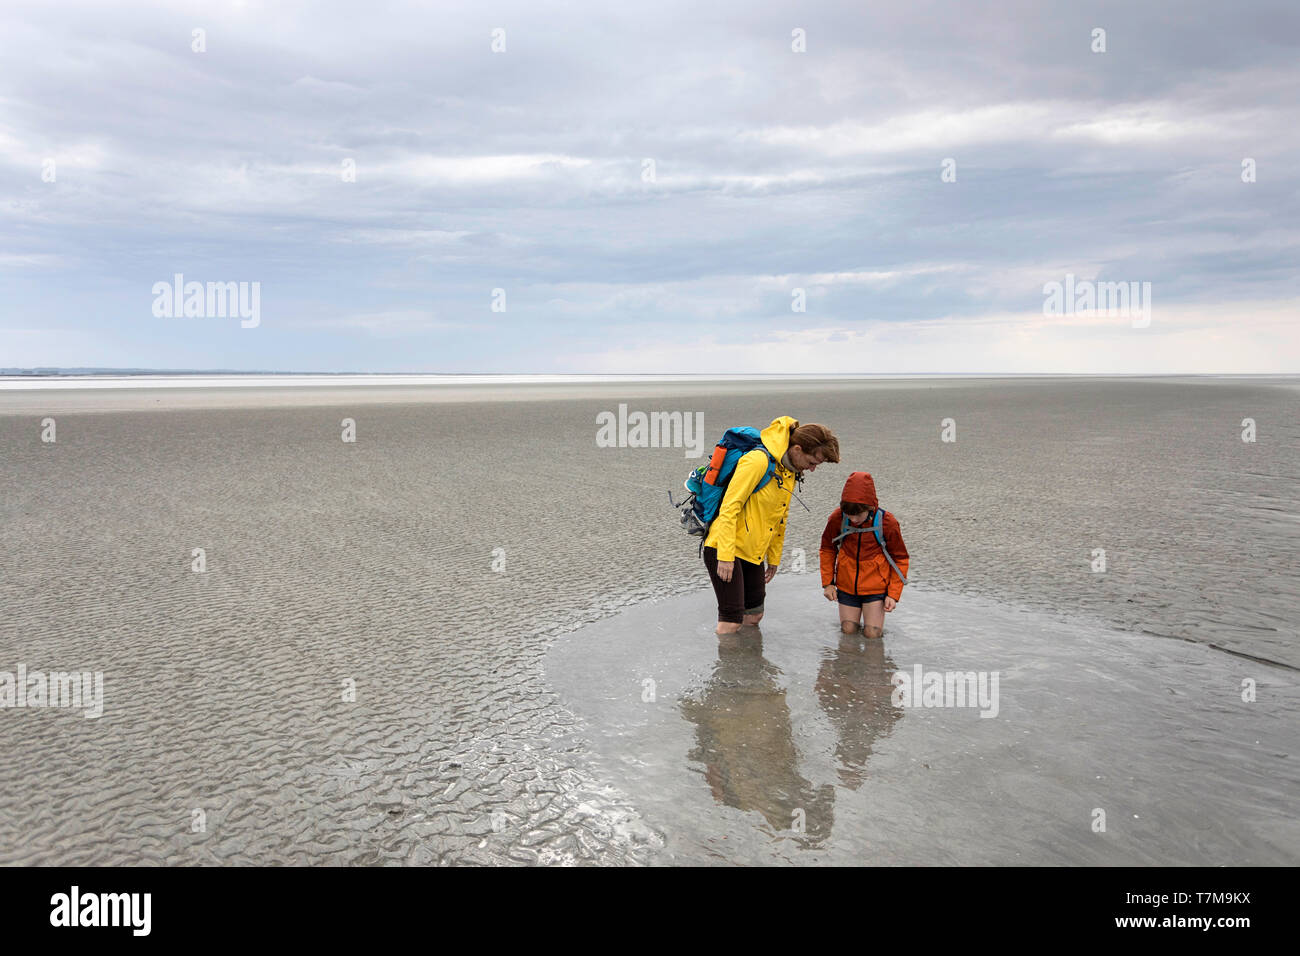 Man Sinking In Quicksand